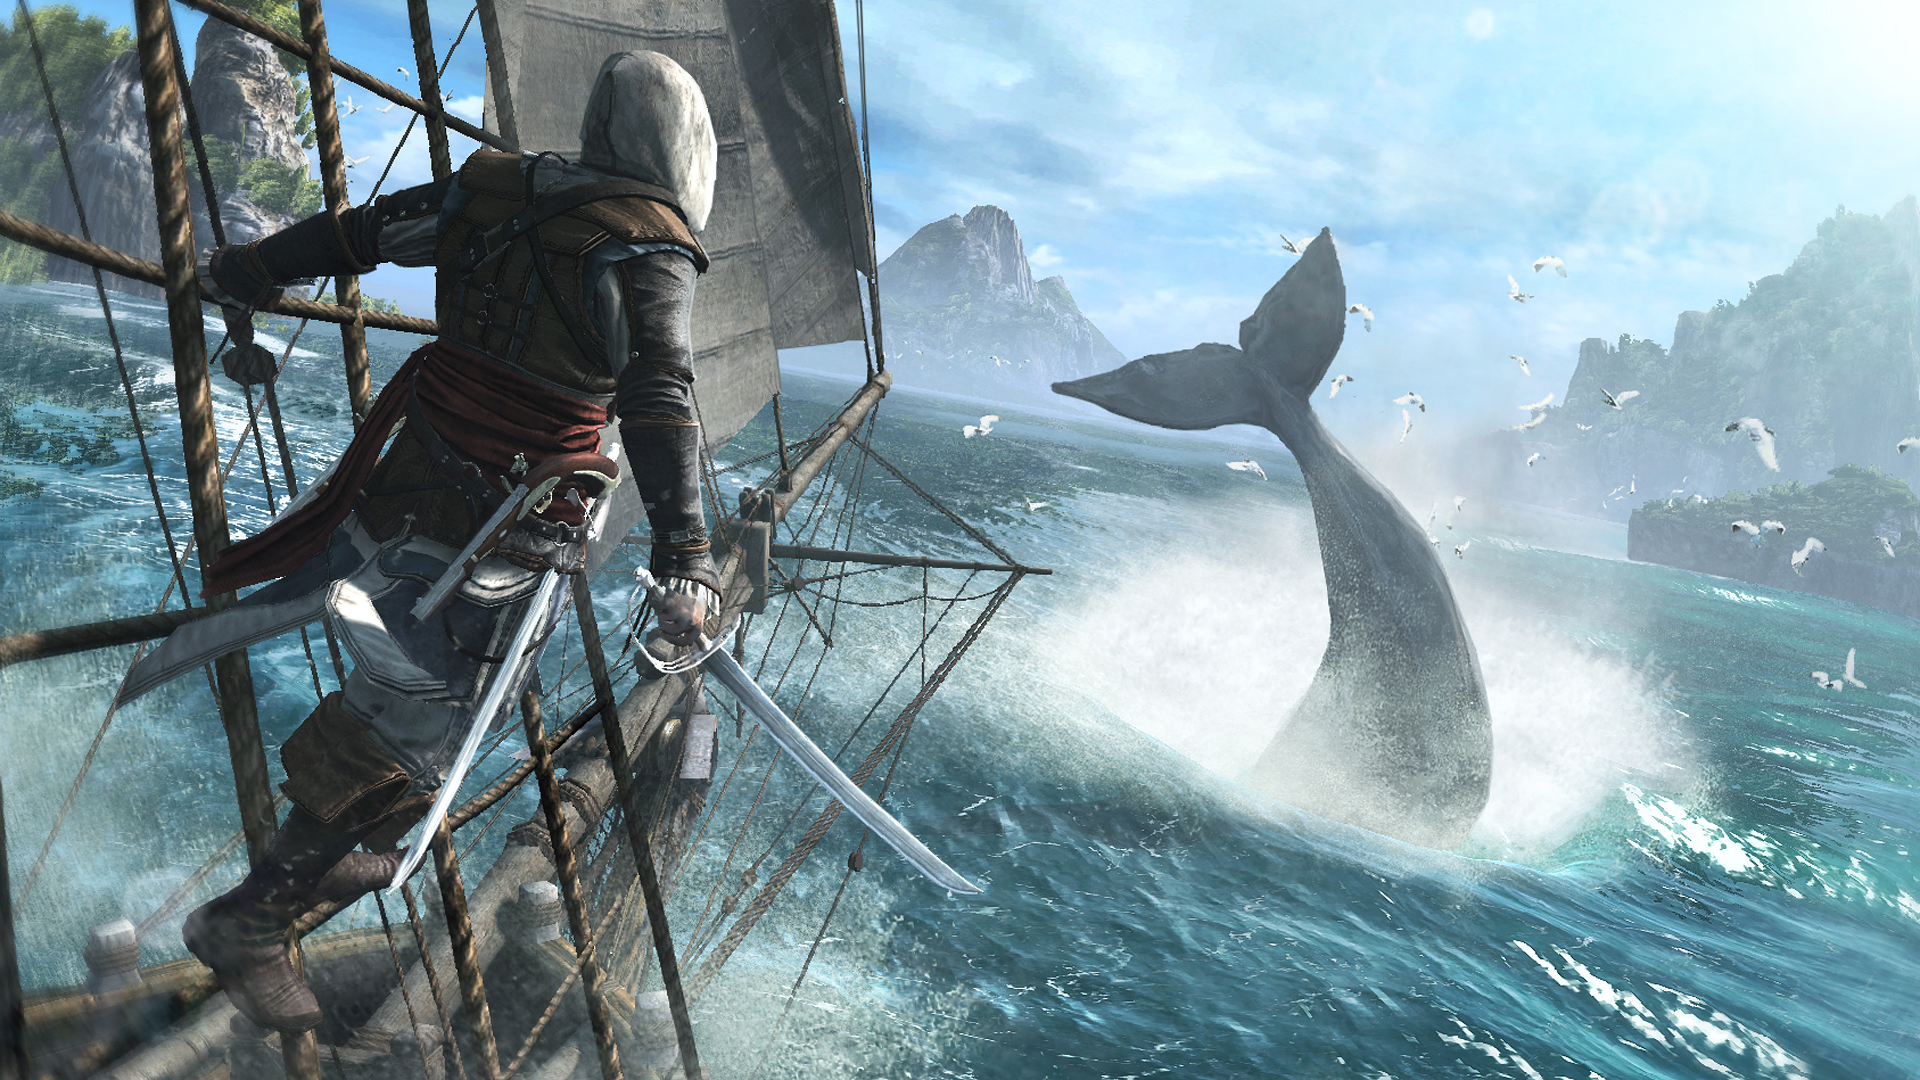 assassin's creed 4 preview